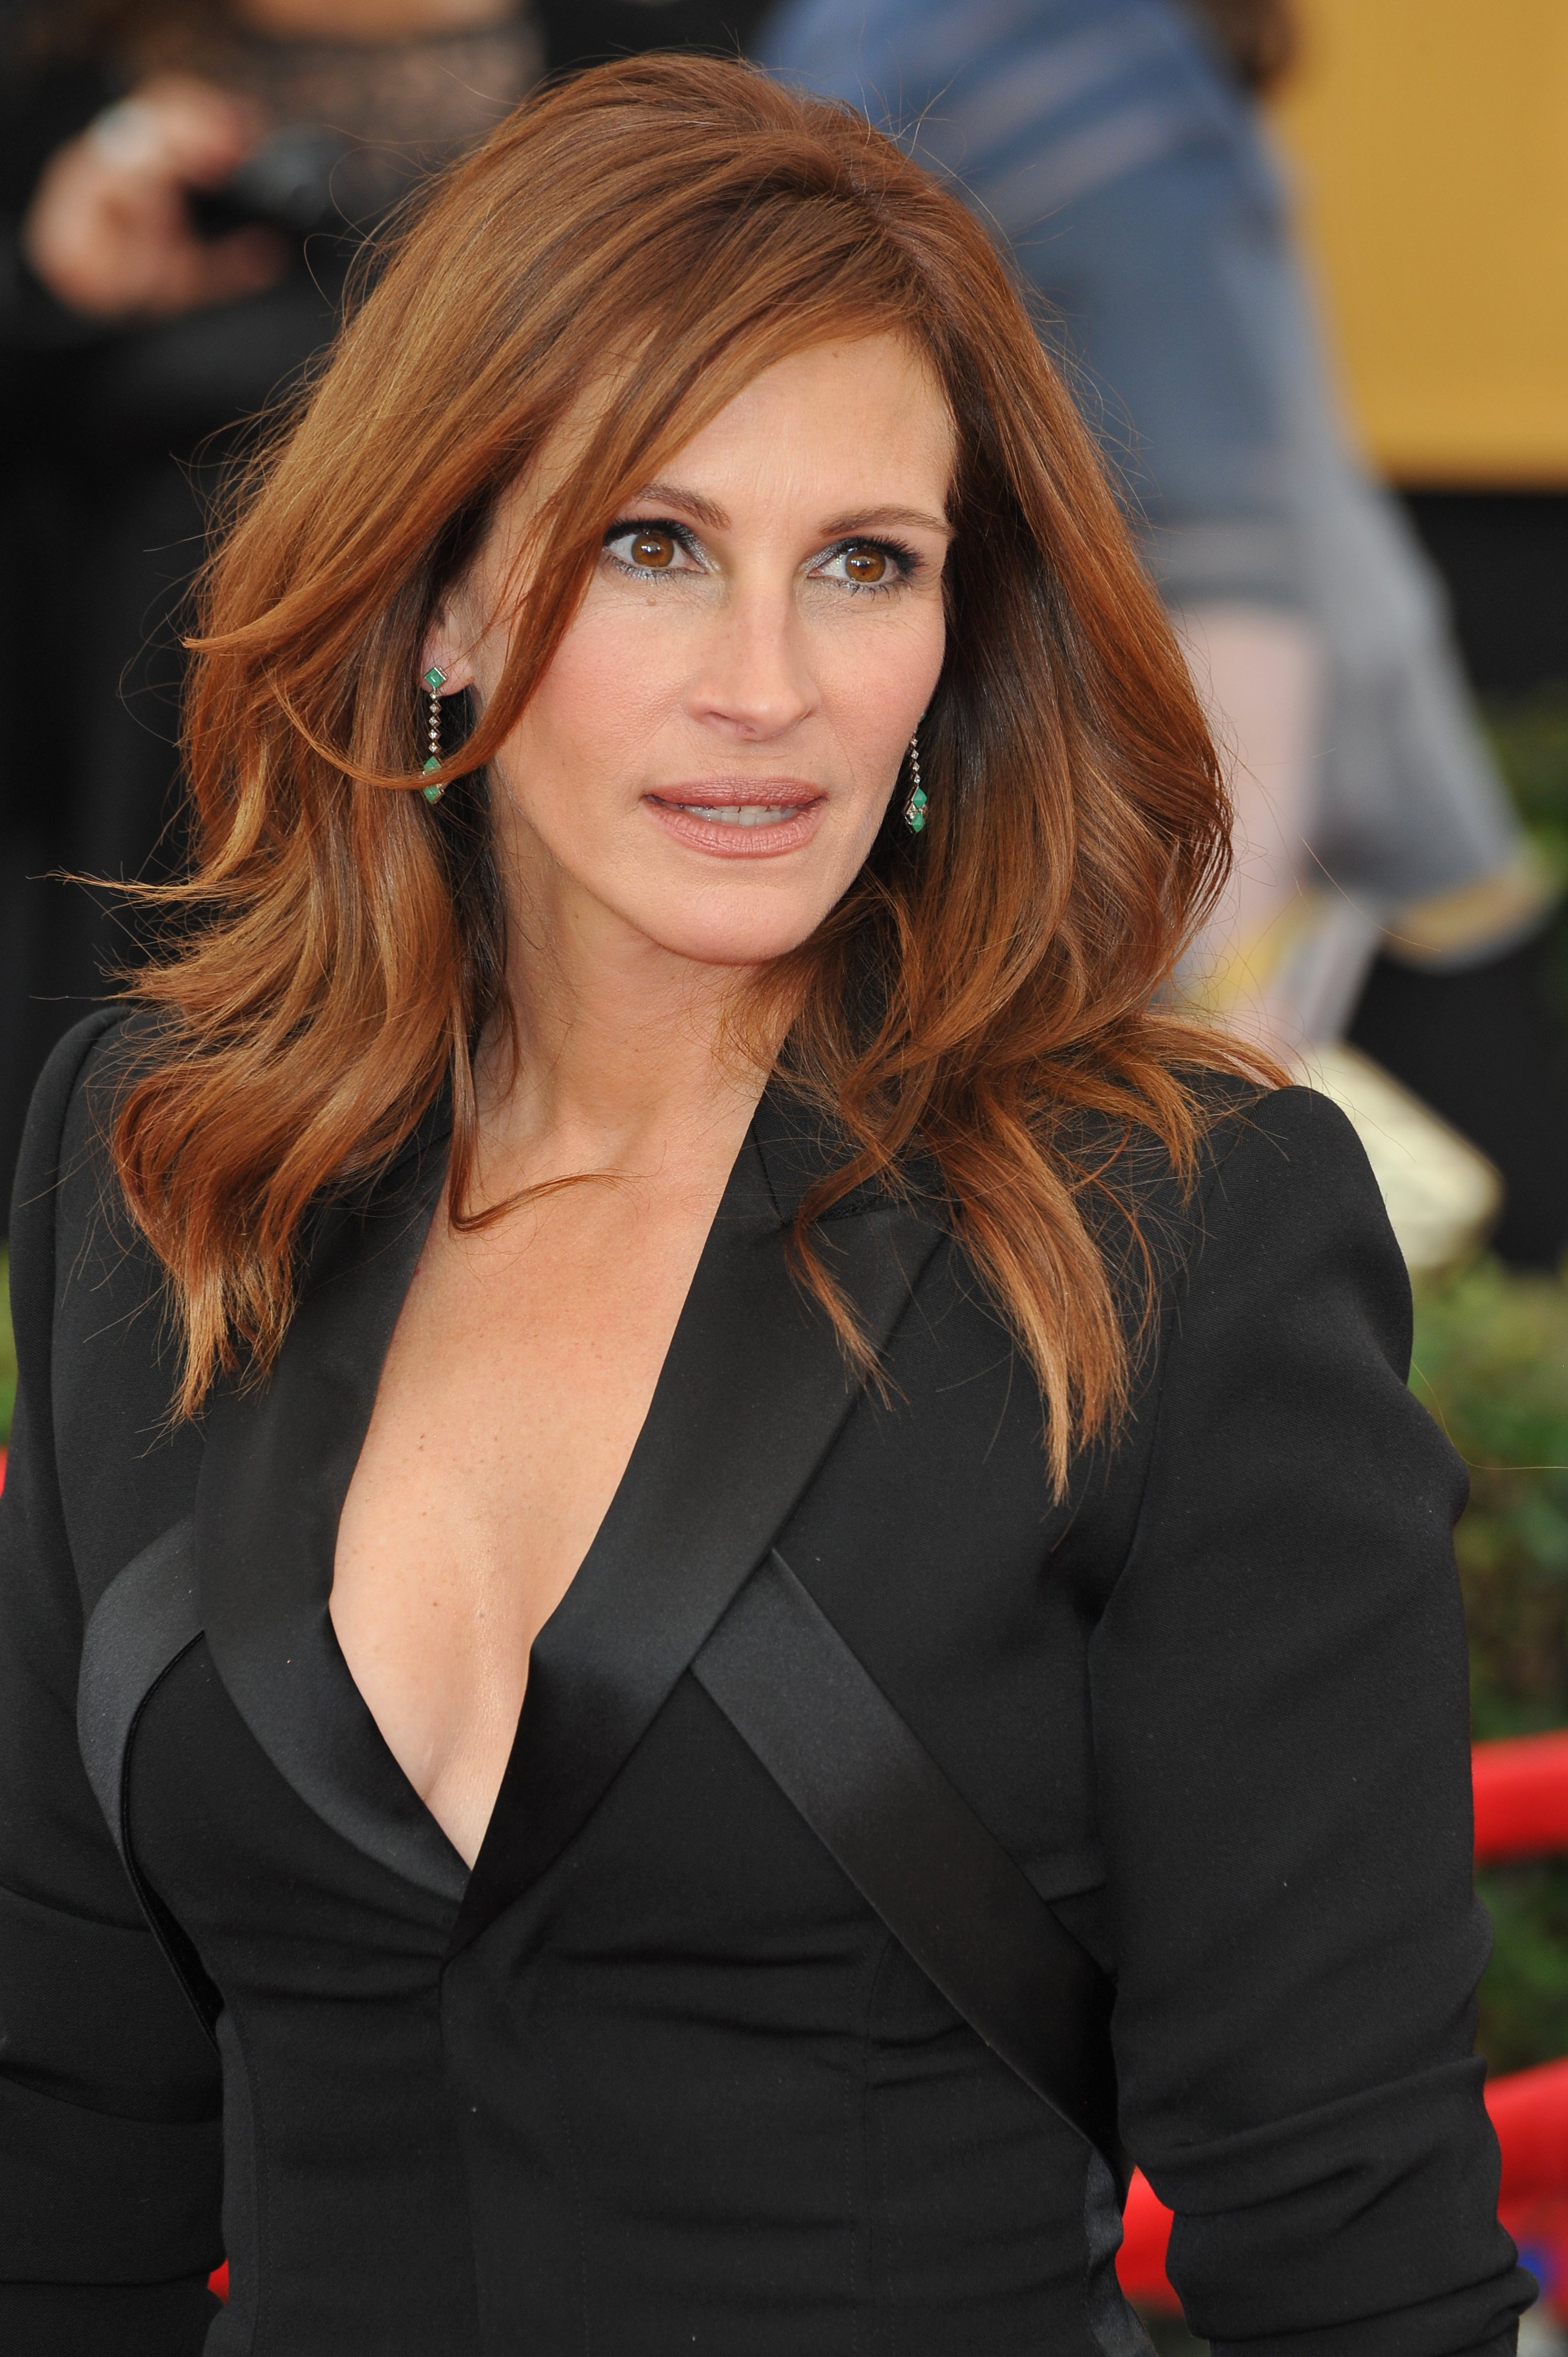 Julia Roberts at the 2015 Screen Actors Guild Awards at the Shrine Auditorium. | Source: Shutterstock.